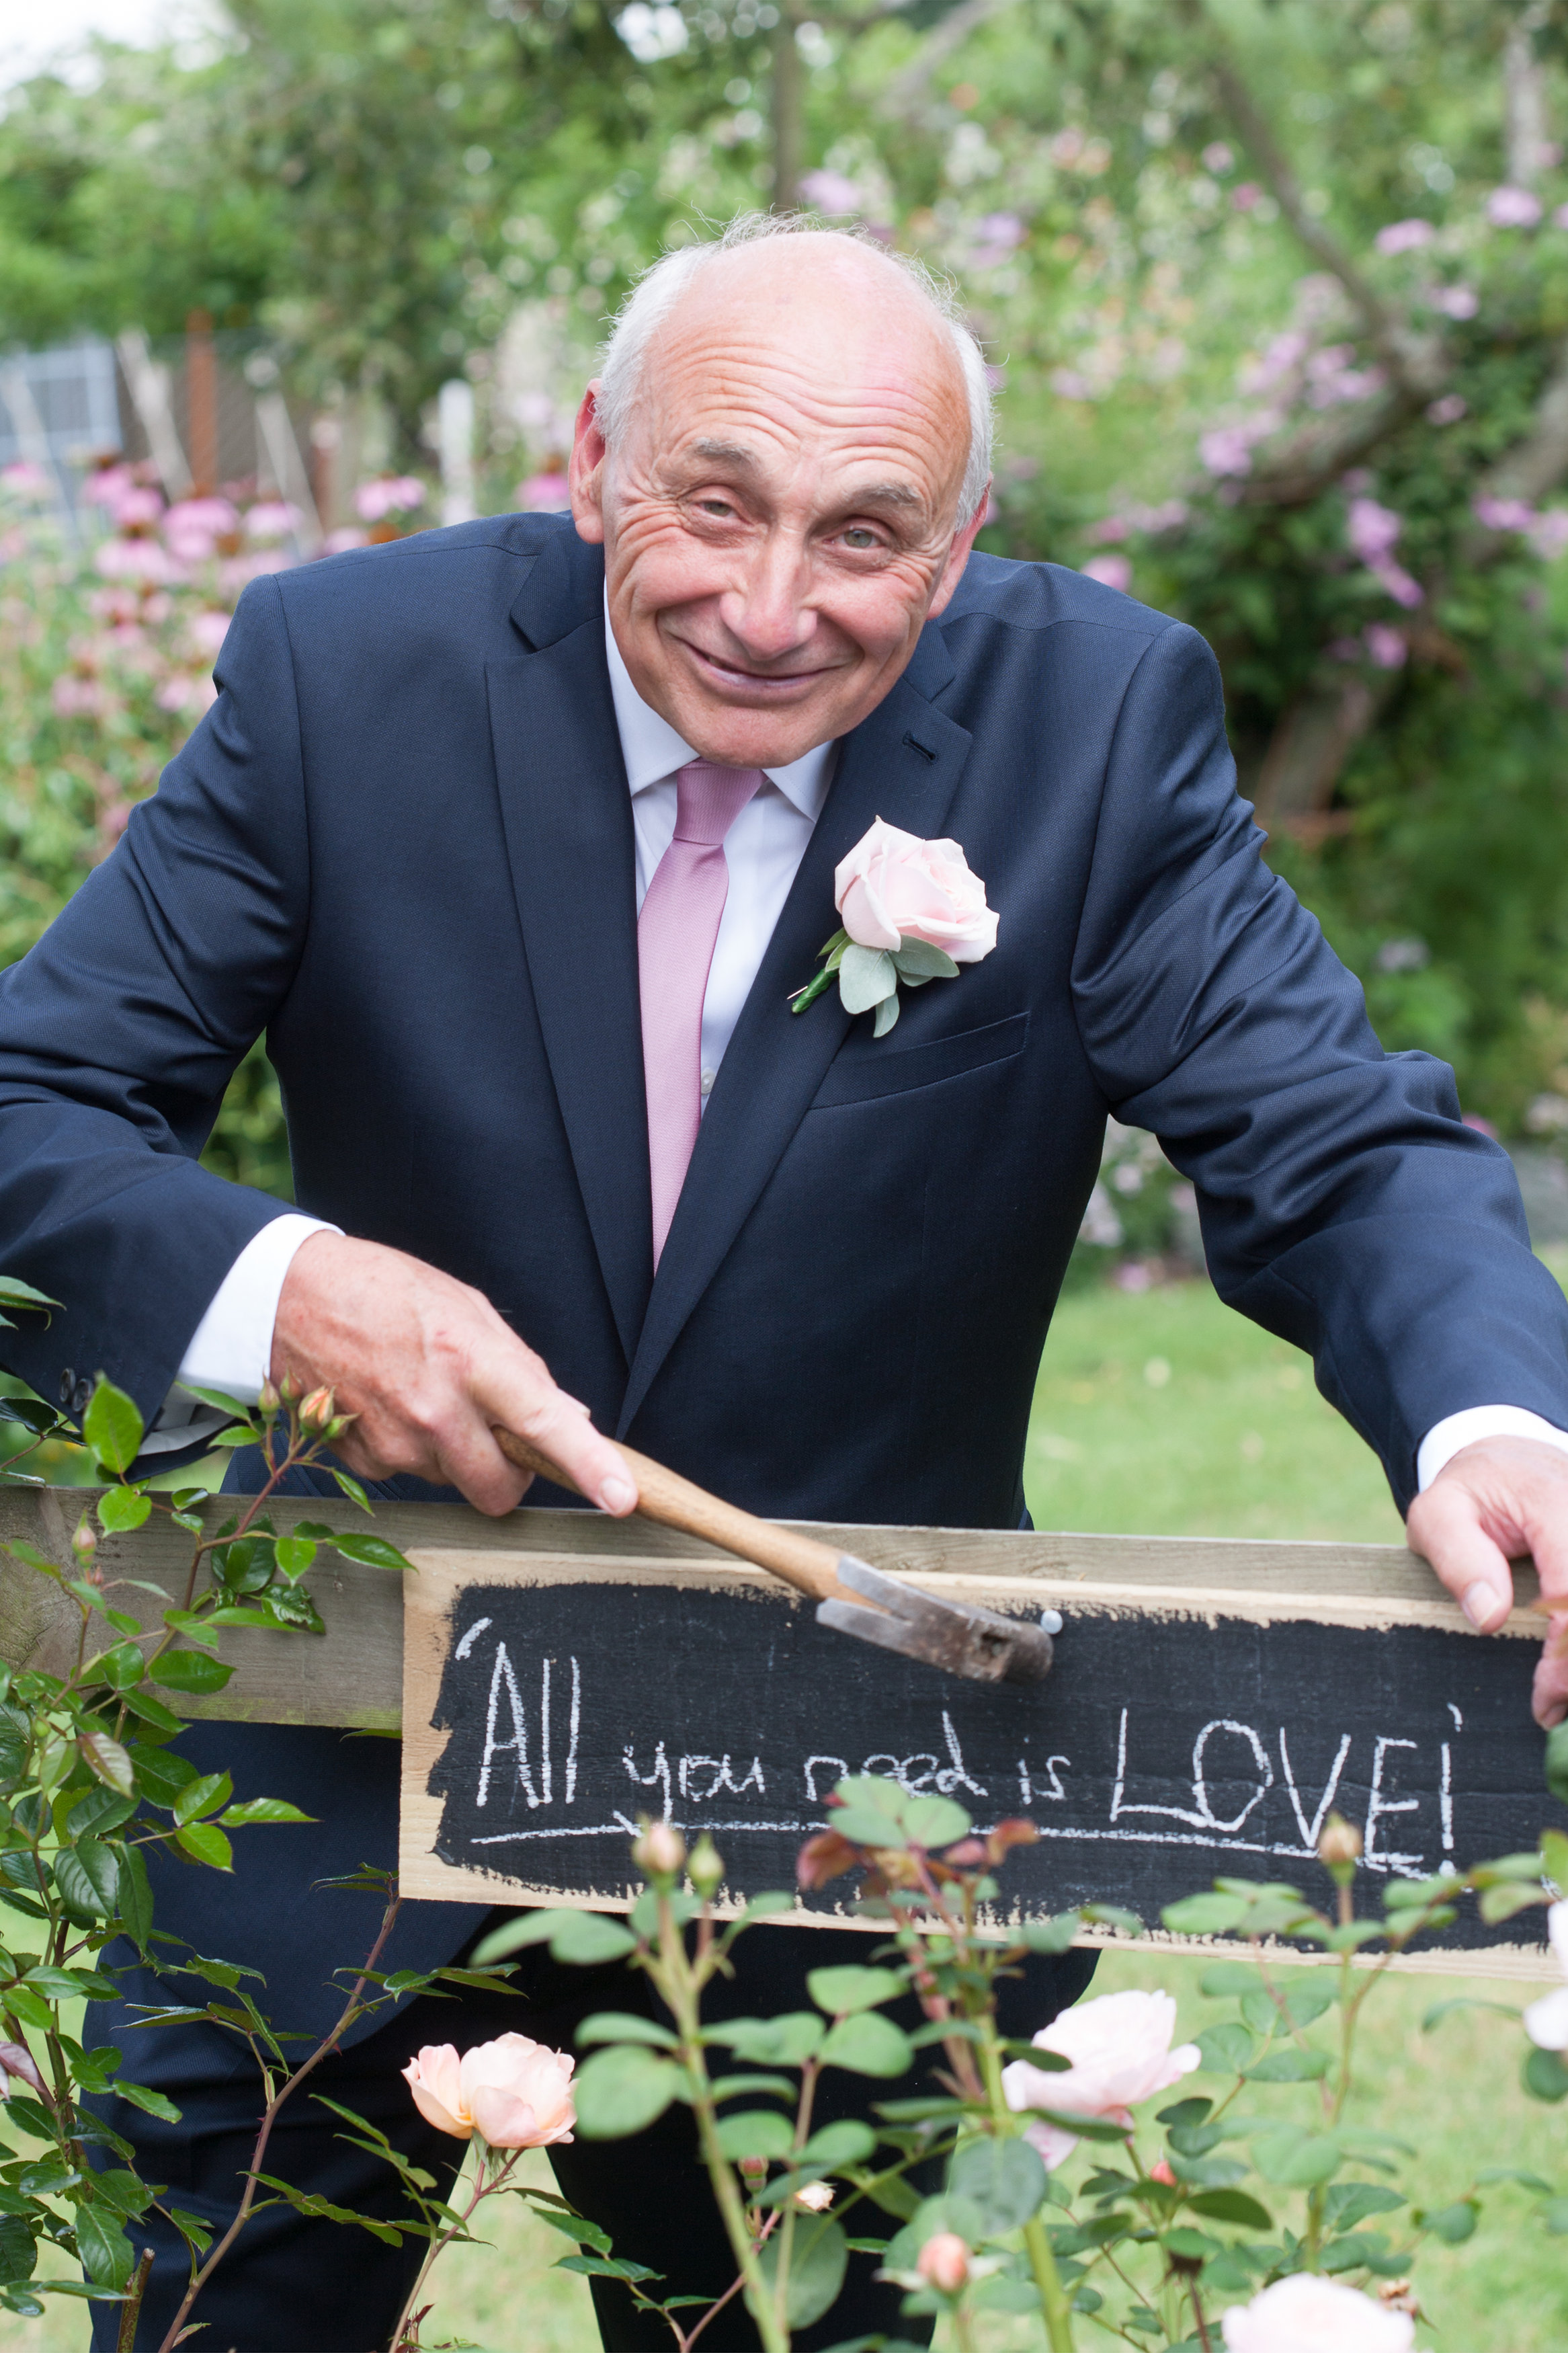 Essex Garden Wedding